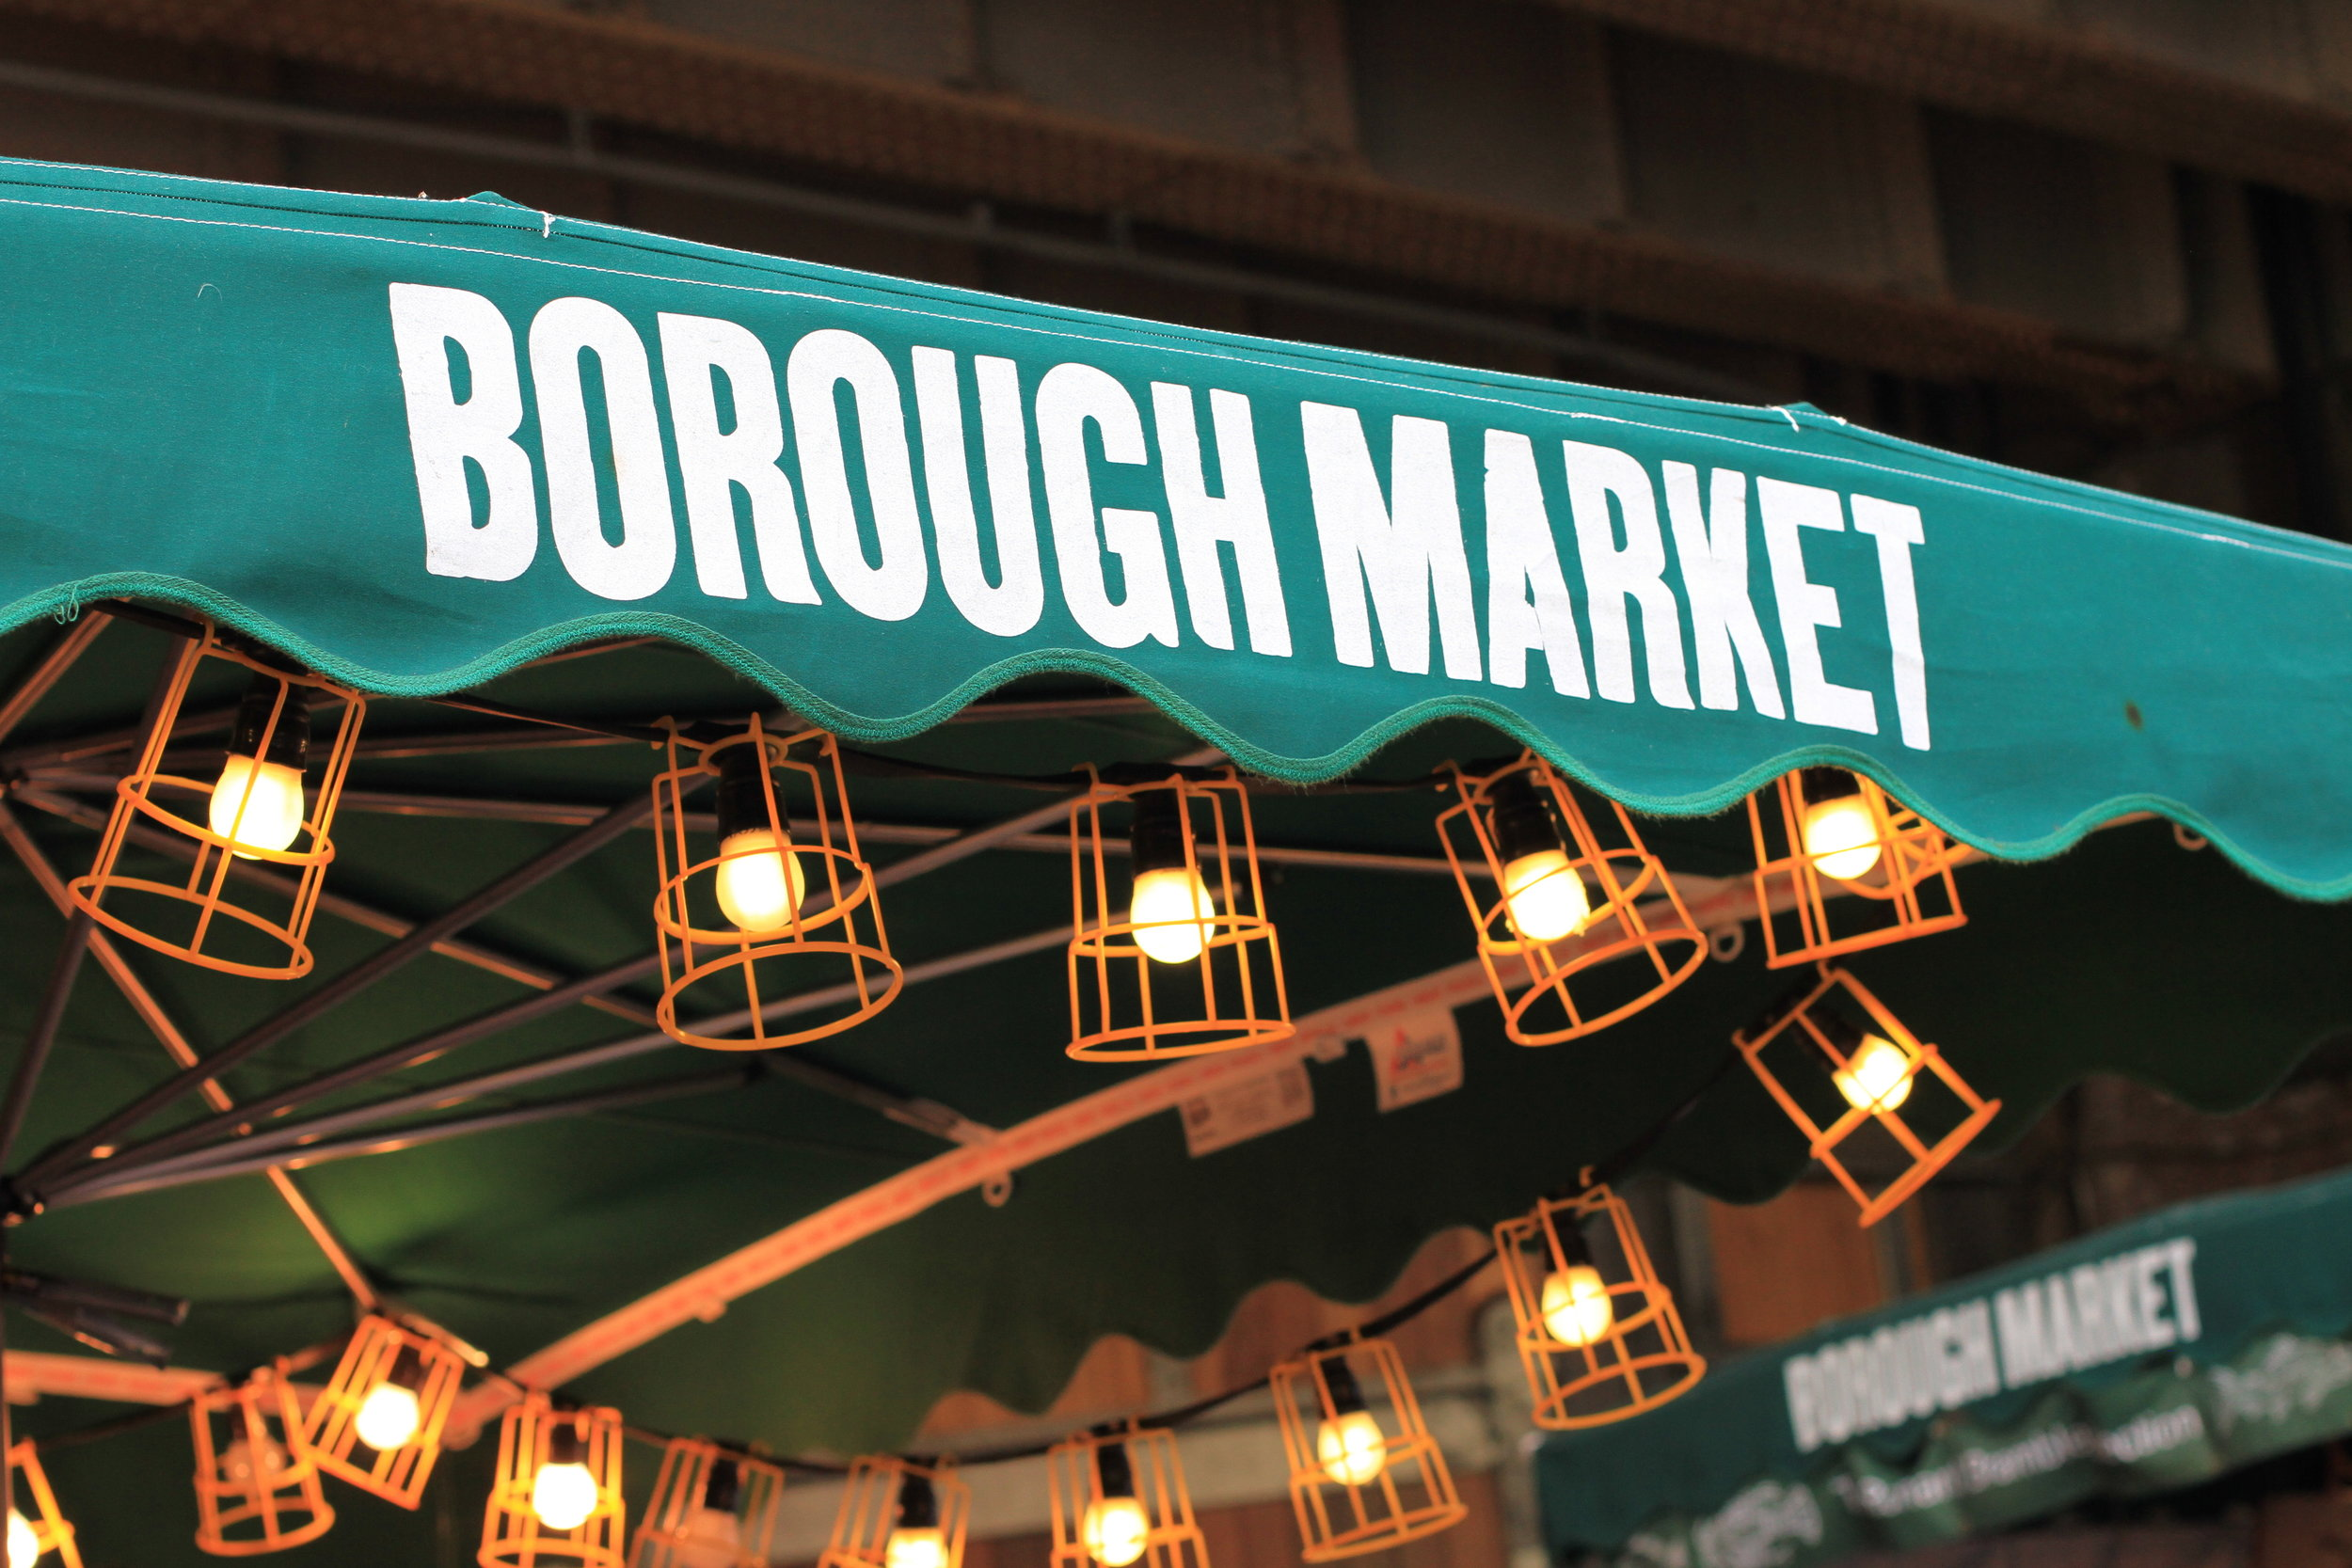 A vegan guide to the street food available at Borough Market, London